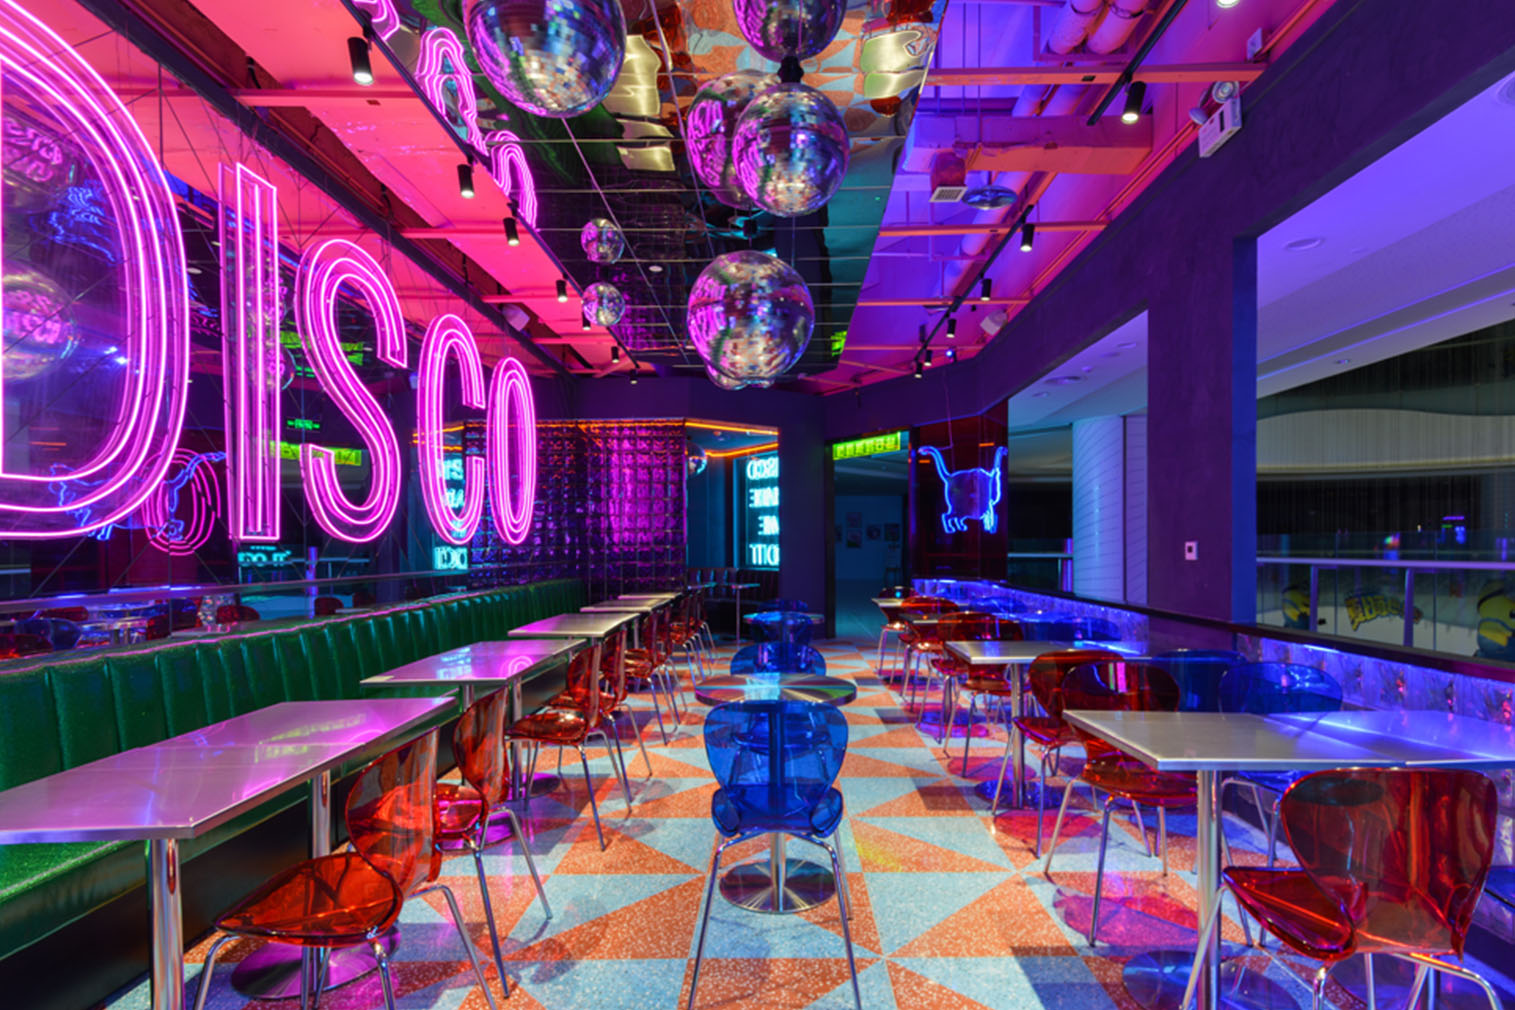 Inside China's glowing neon restaurants - The Spaces